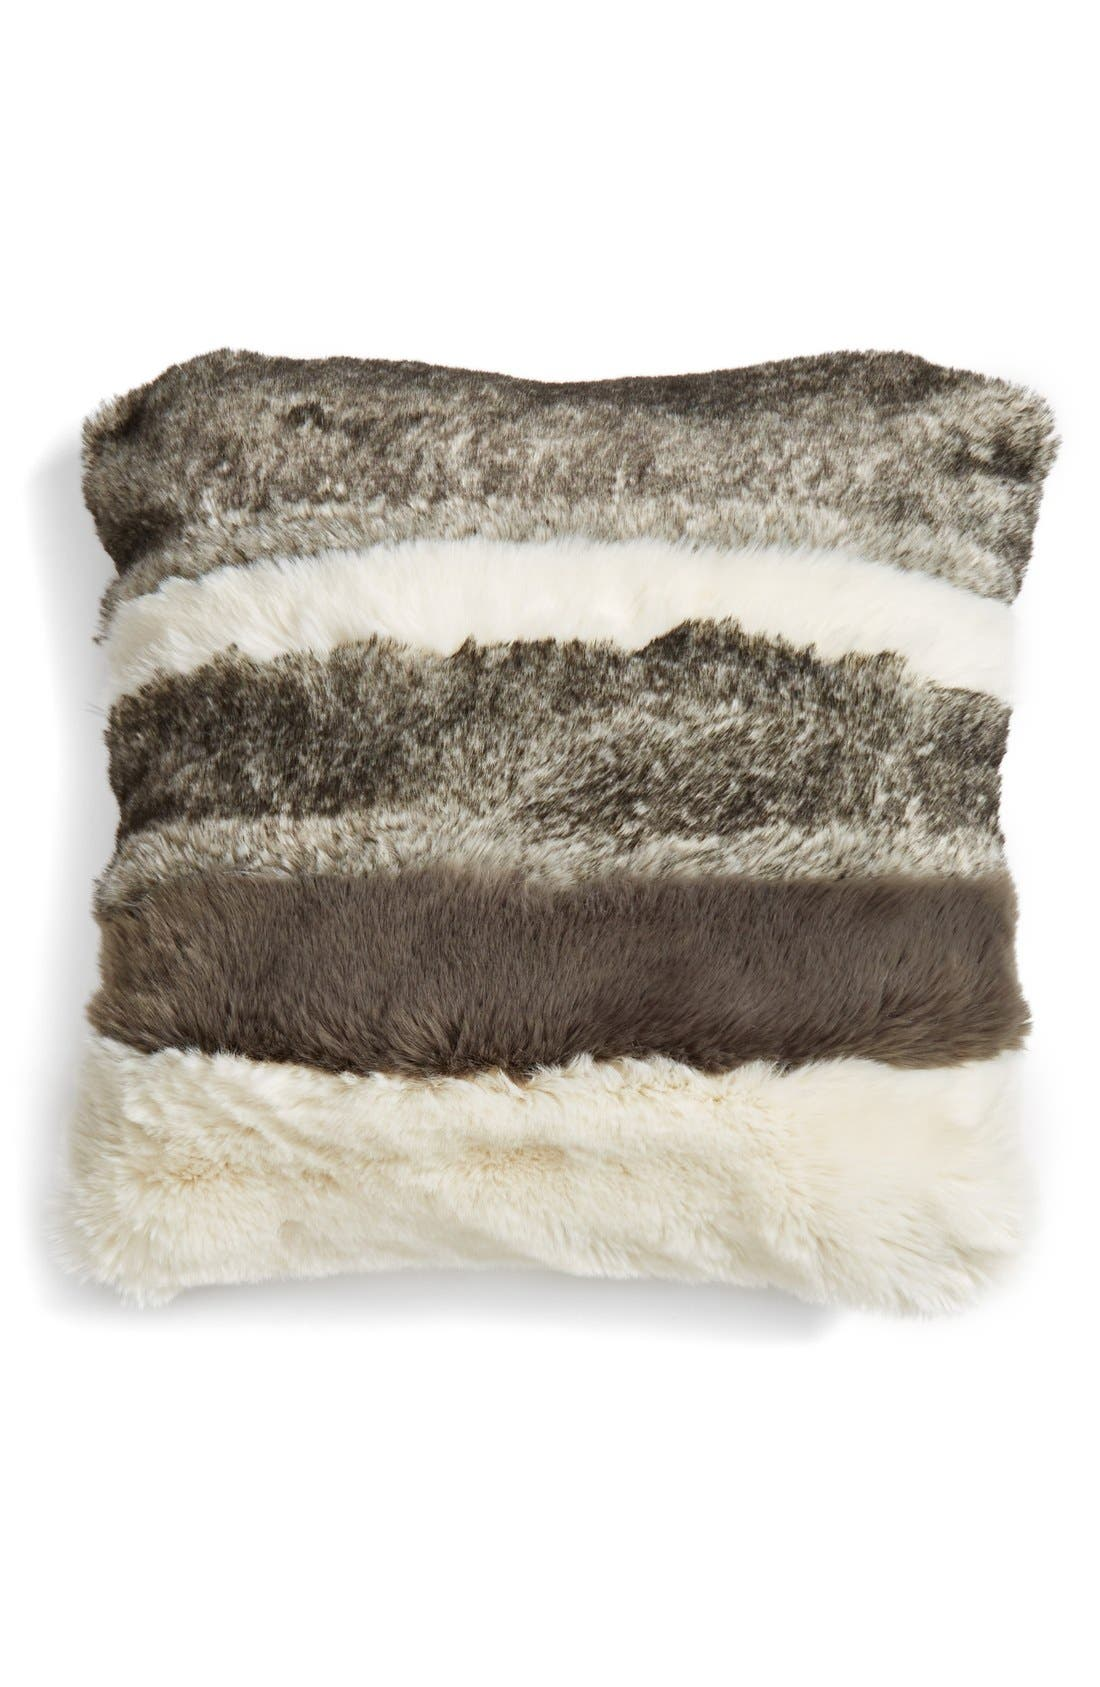 NORDSTROM AT HOME, Faux Fur Pillow, Main thumbnail 1, color, 900